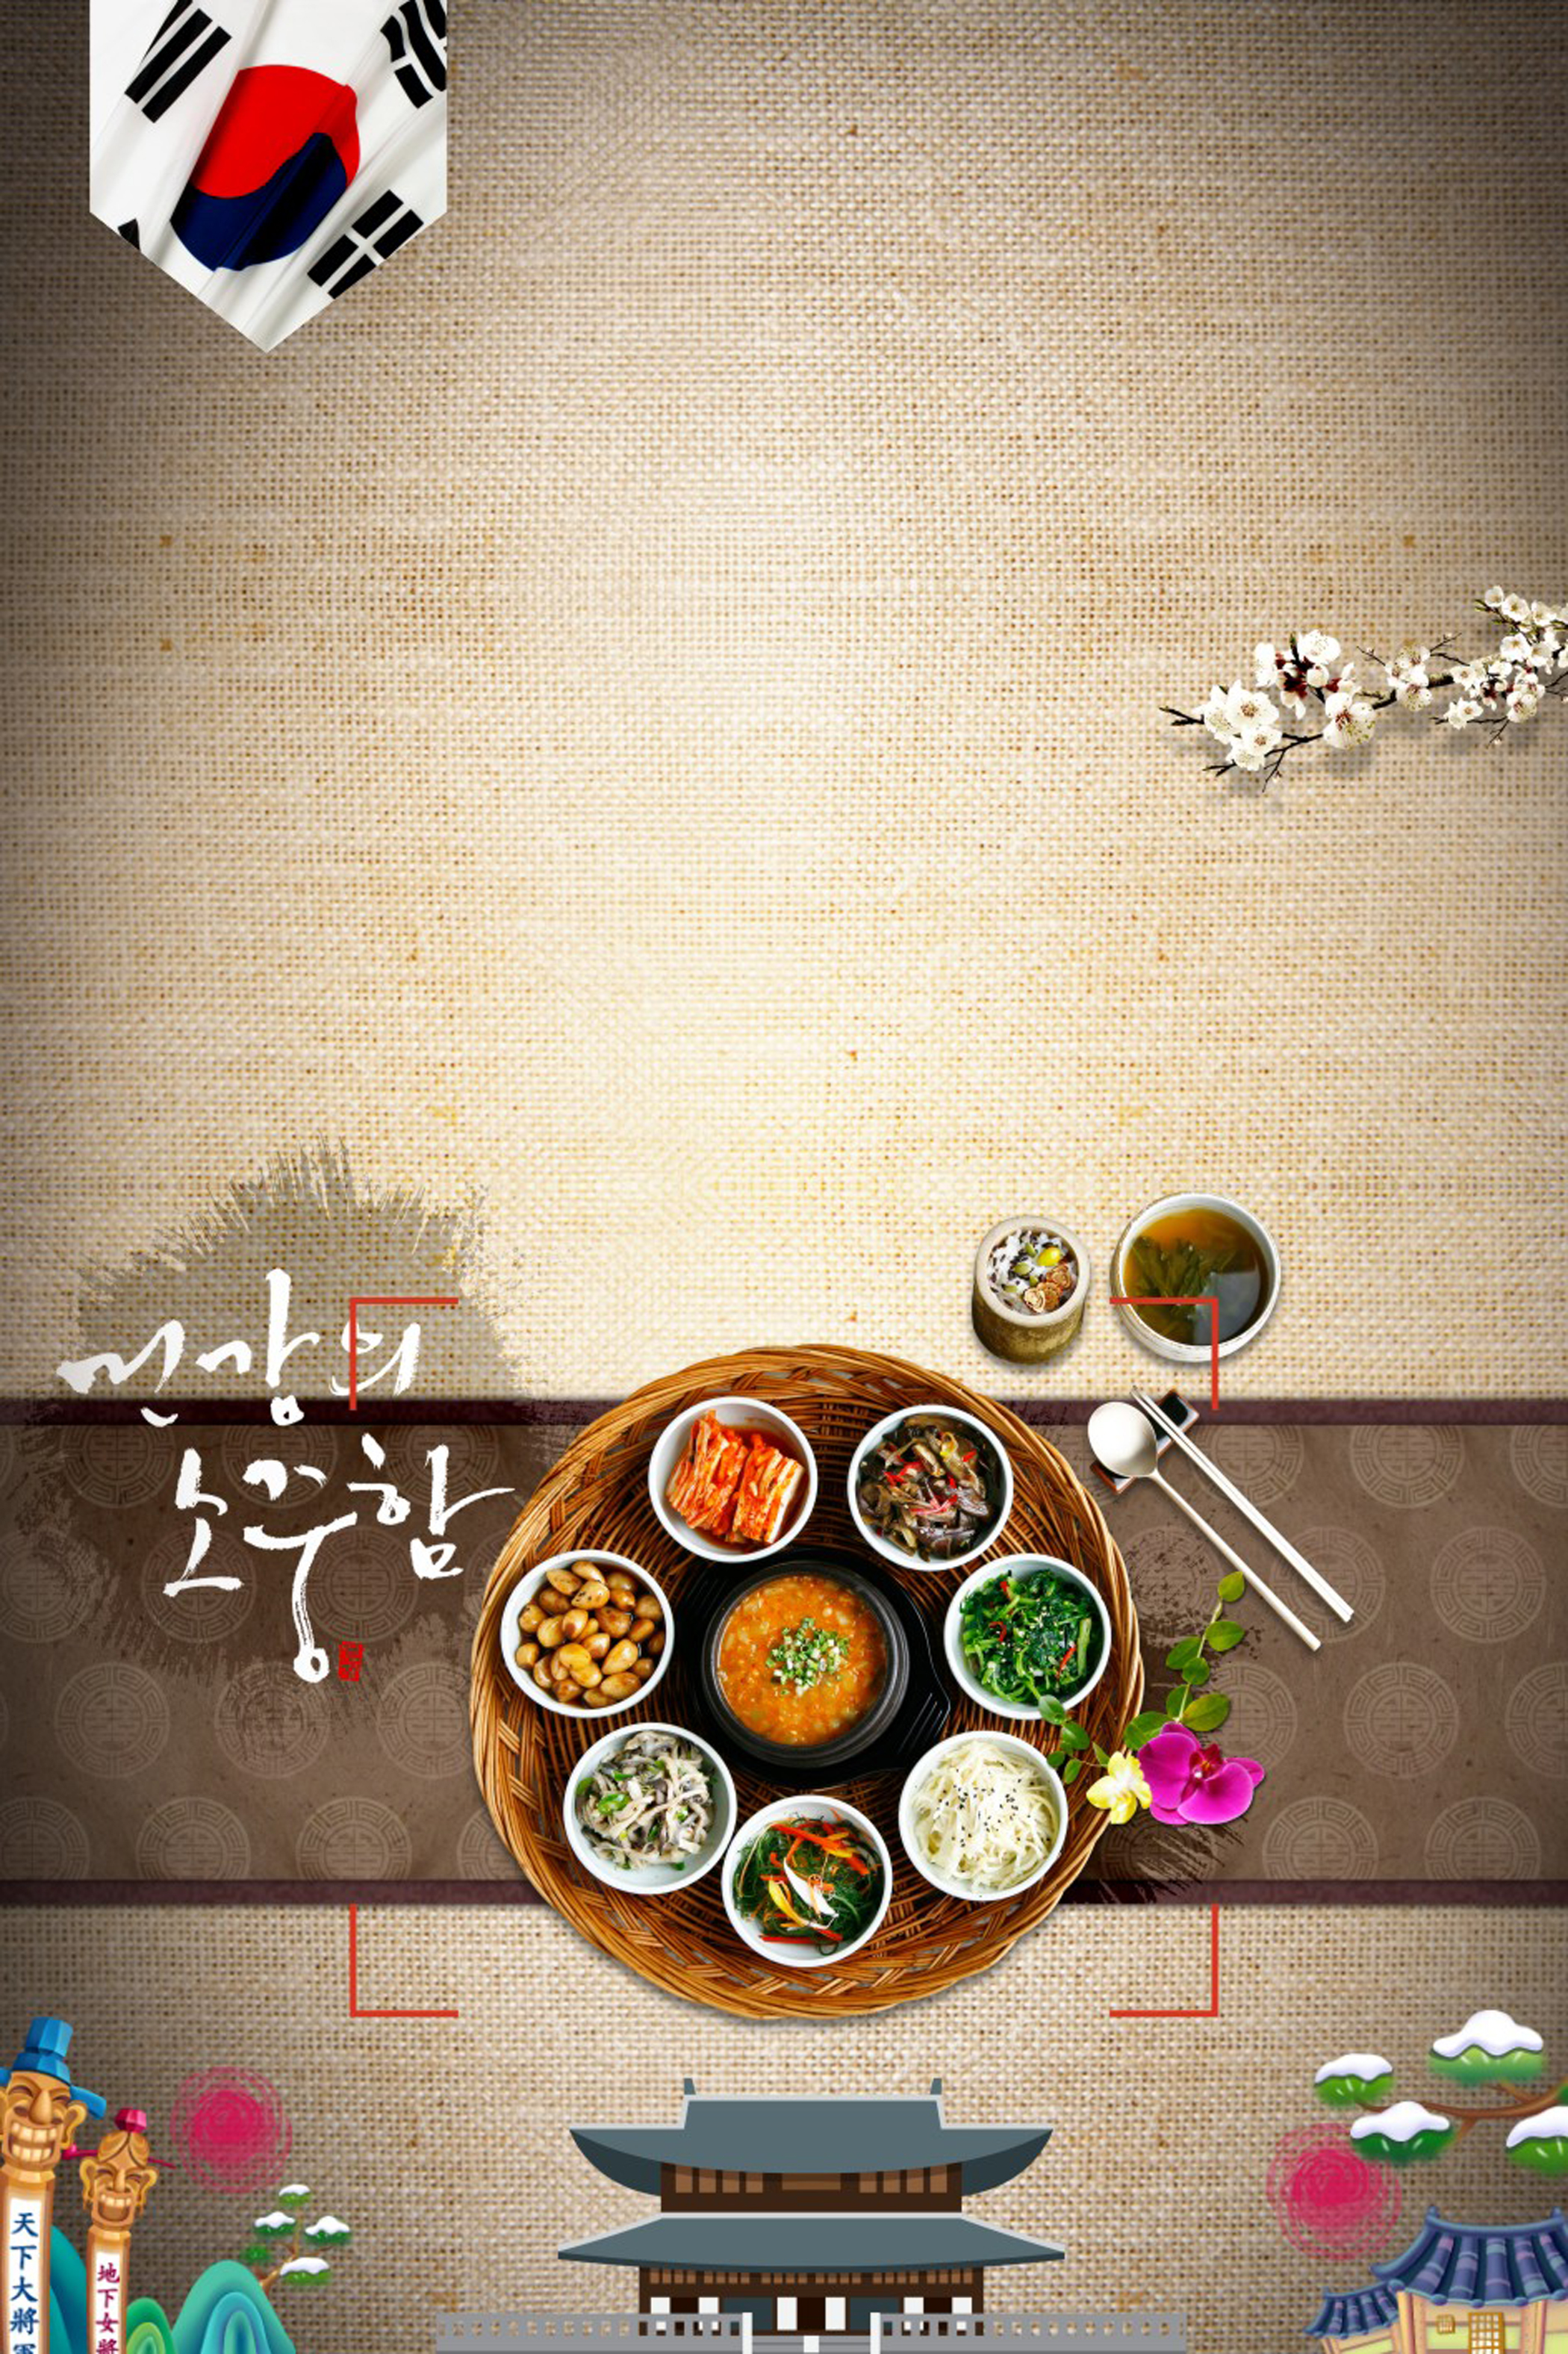 Fall Flowers Wallpaper Backgrounds Korean Cuisine Posters Korean Food Poster Background